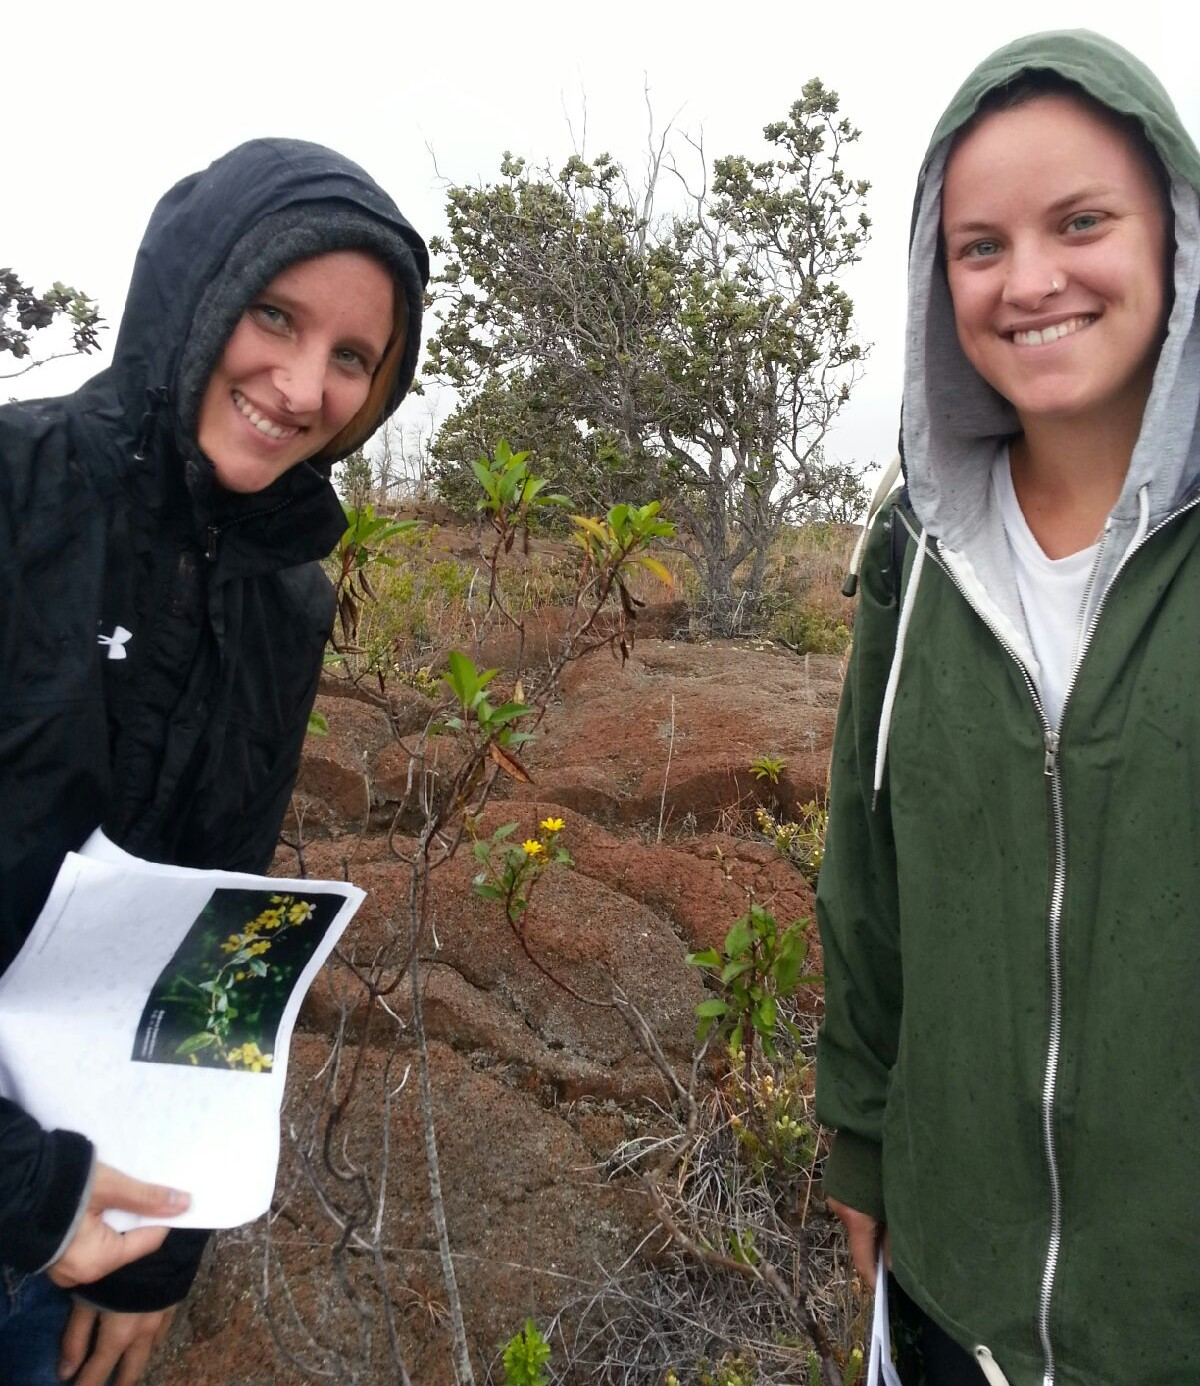 Kalya Clarke and Fiona Metcalfe (a visiting exchange student from the University of Stirling, Scotland) correctly identify a  Bidens hawaiiensis  in Hawaii Volcanoes National Park